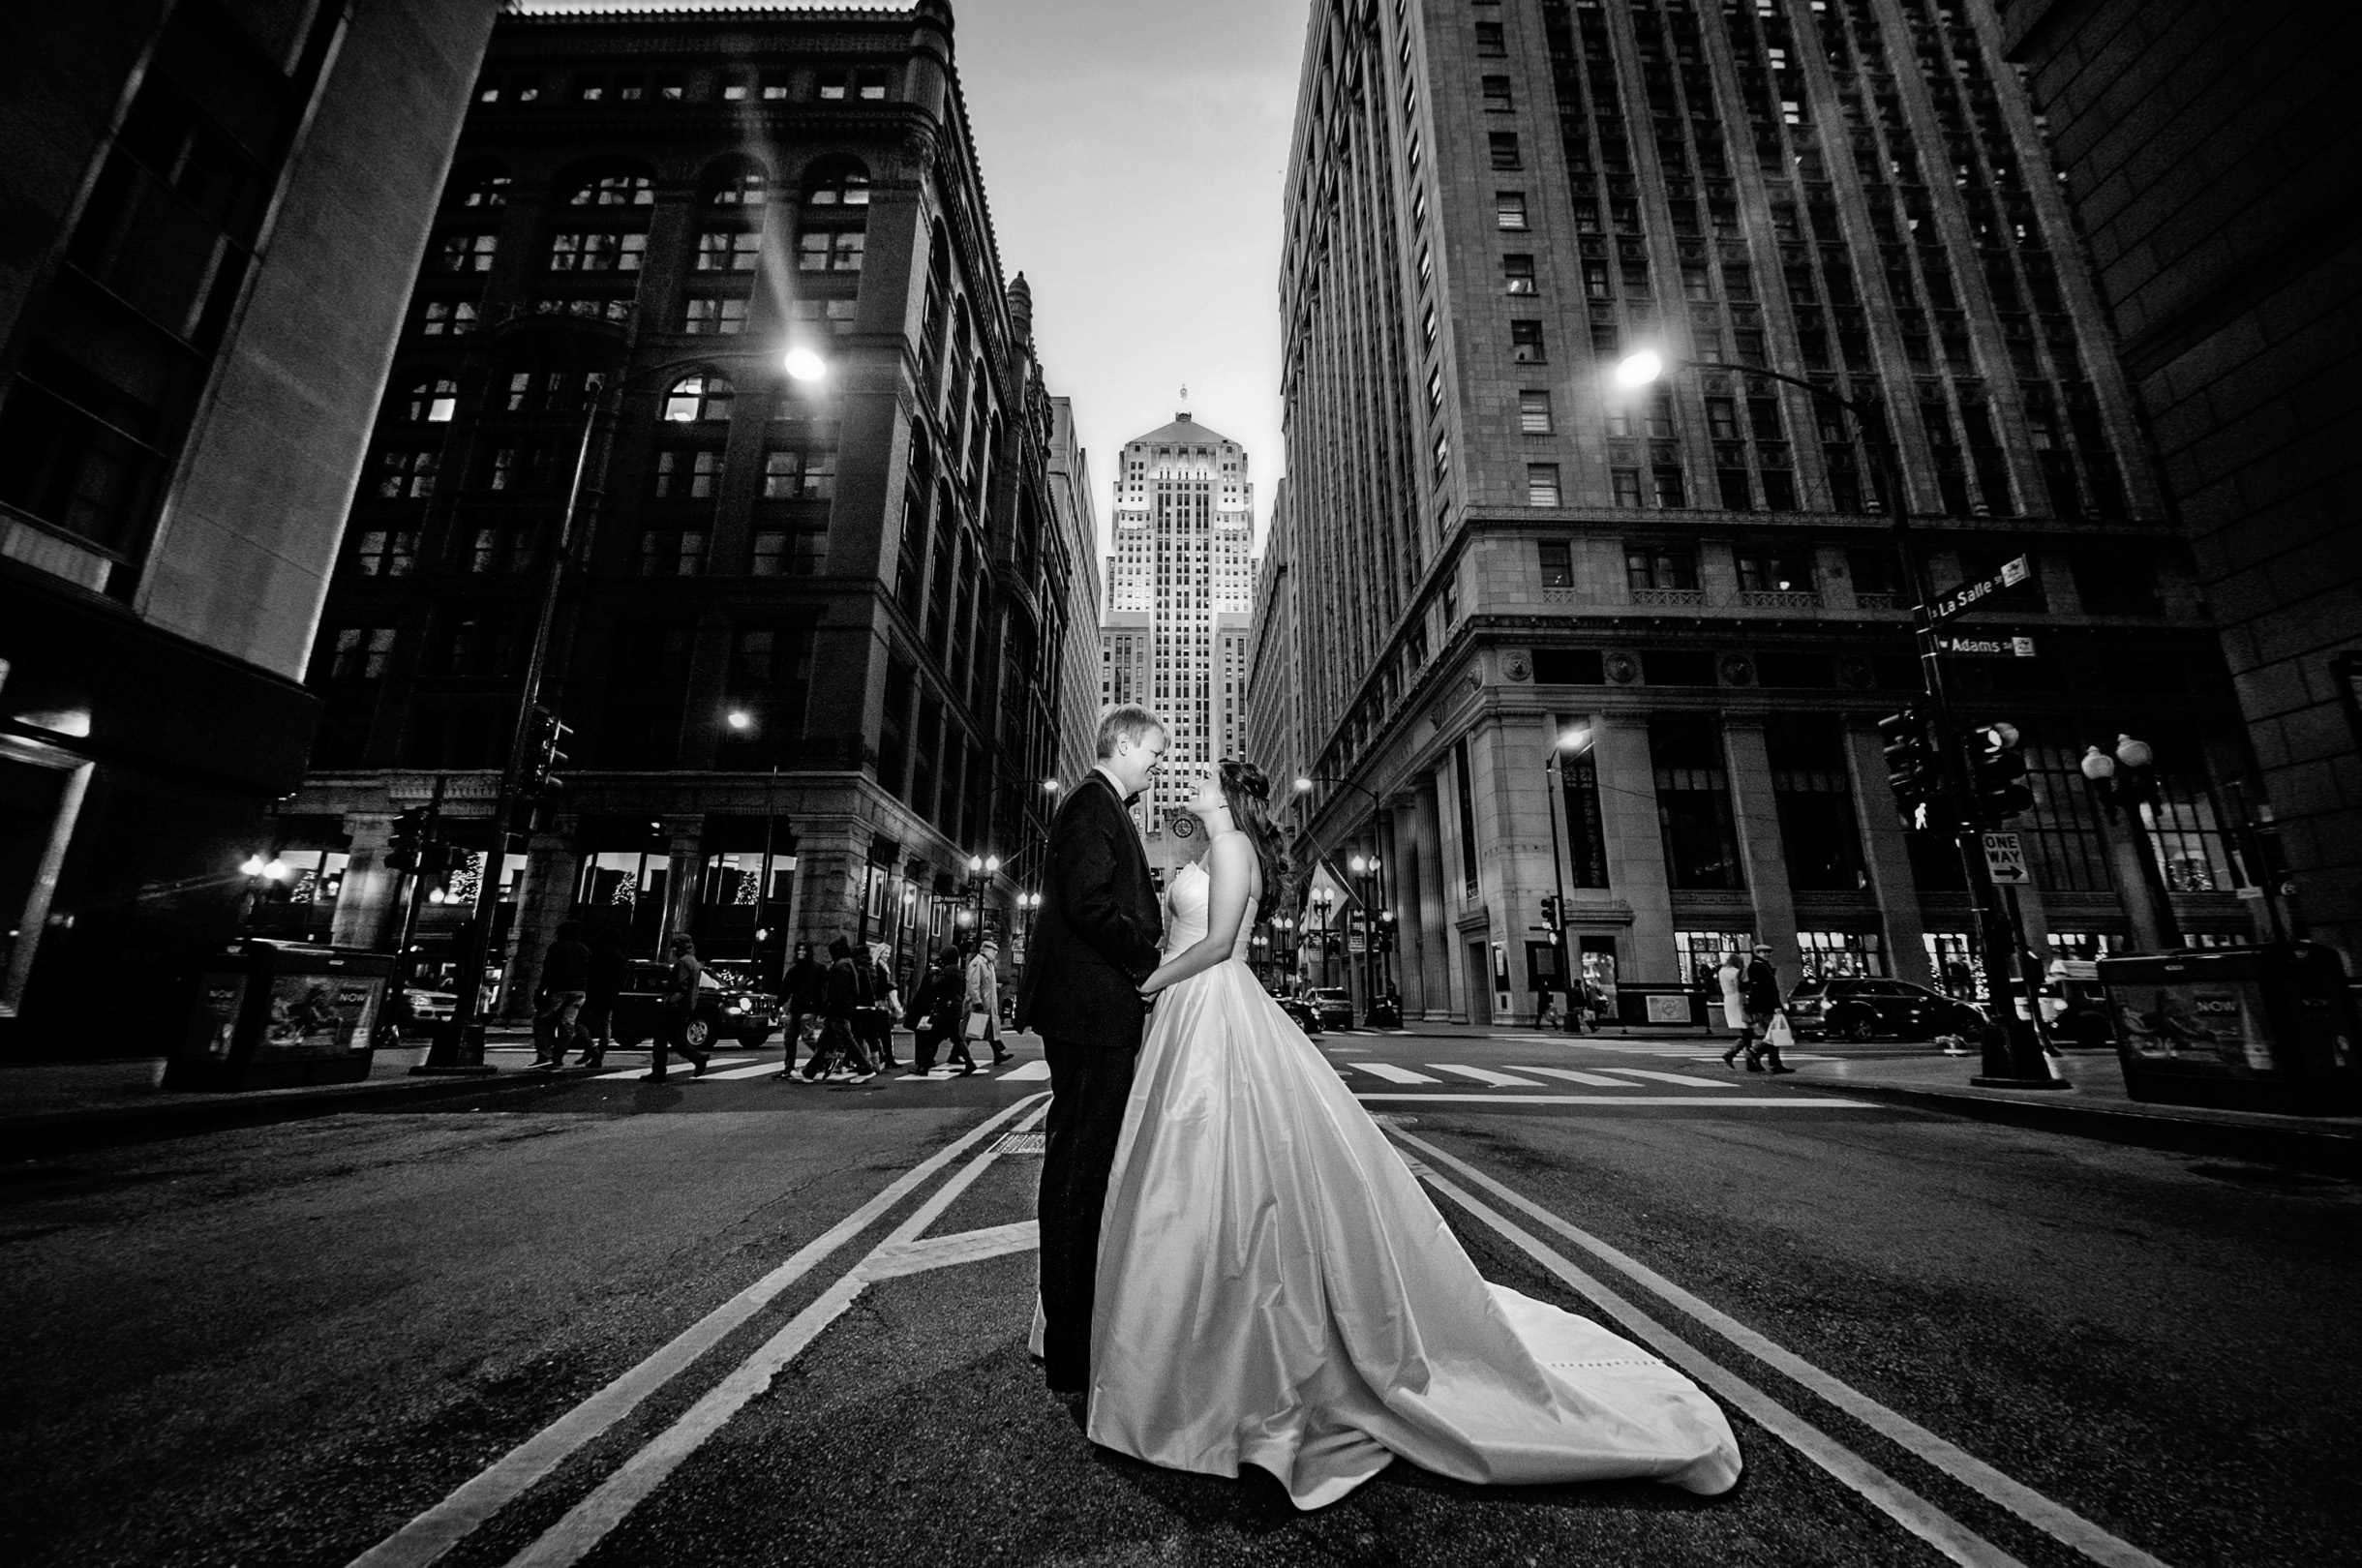 Black and White photo of bride and groom on LaSalle street in Chicago in front of the Board of Trade in traffic-177